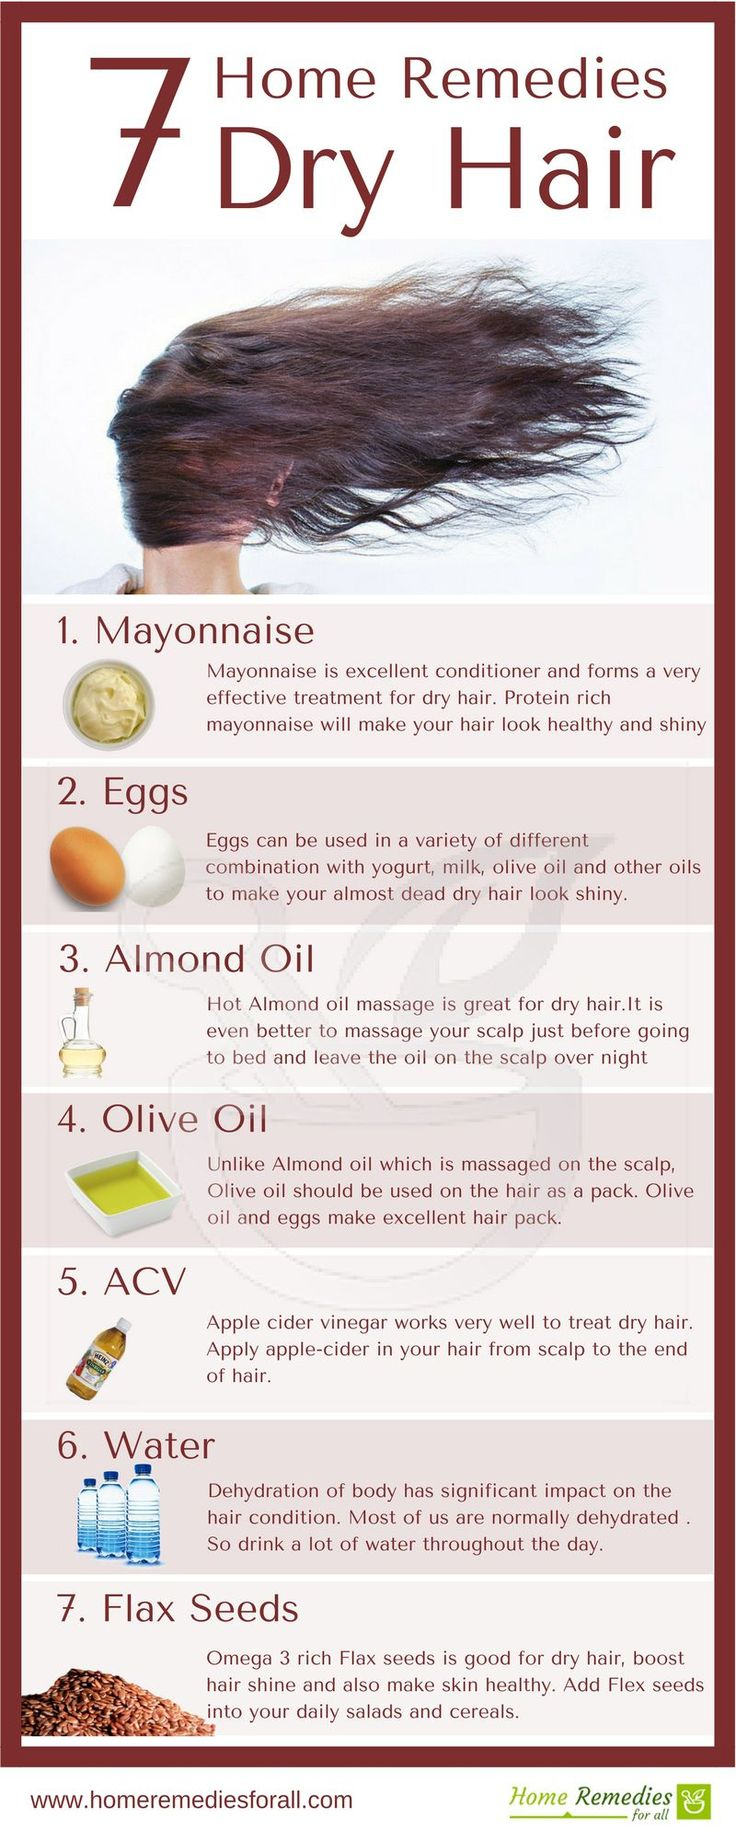 These 7 home remedies for dry hair will make your hair healthy, glossy and shiny...